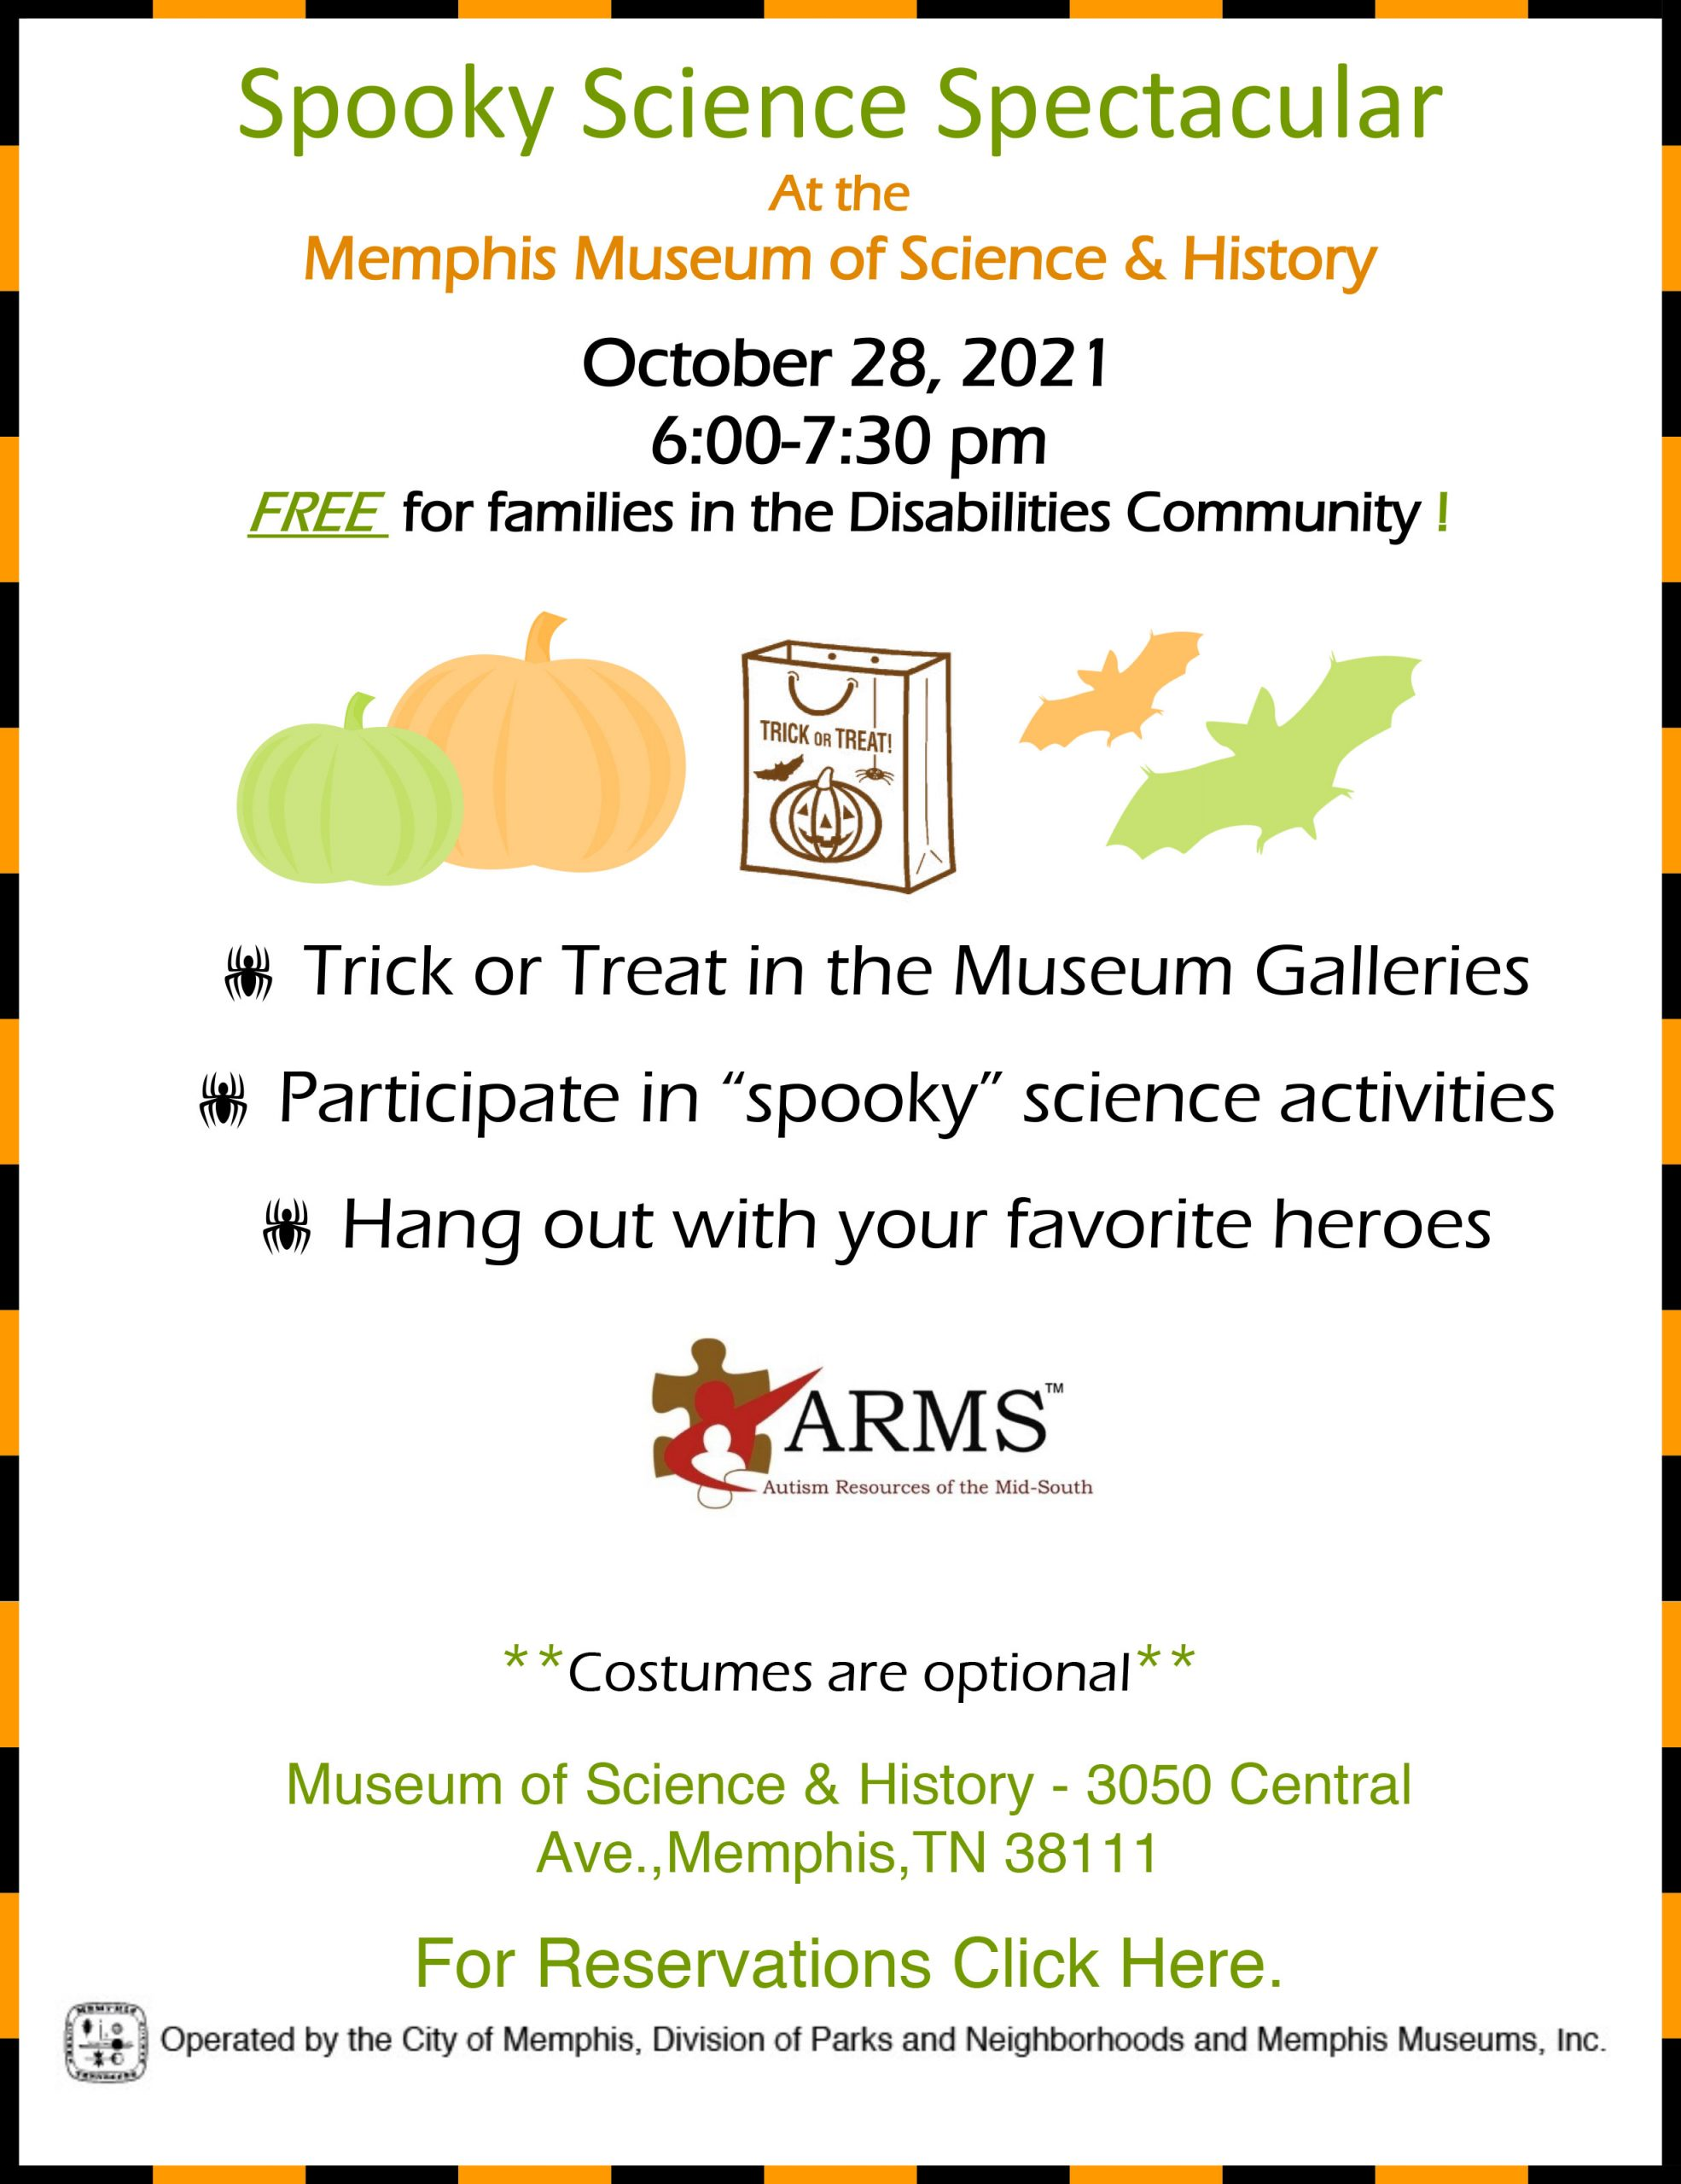 Spooky Science Spectacular Flyer